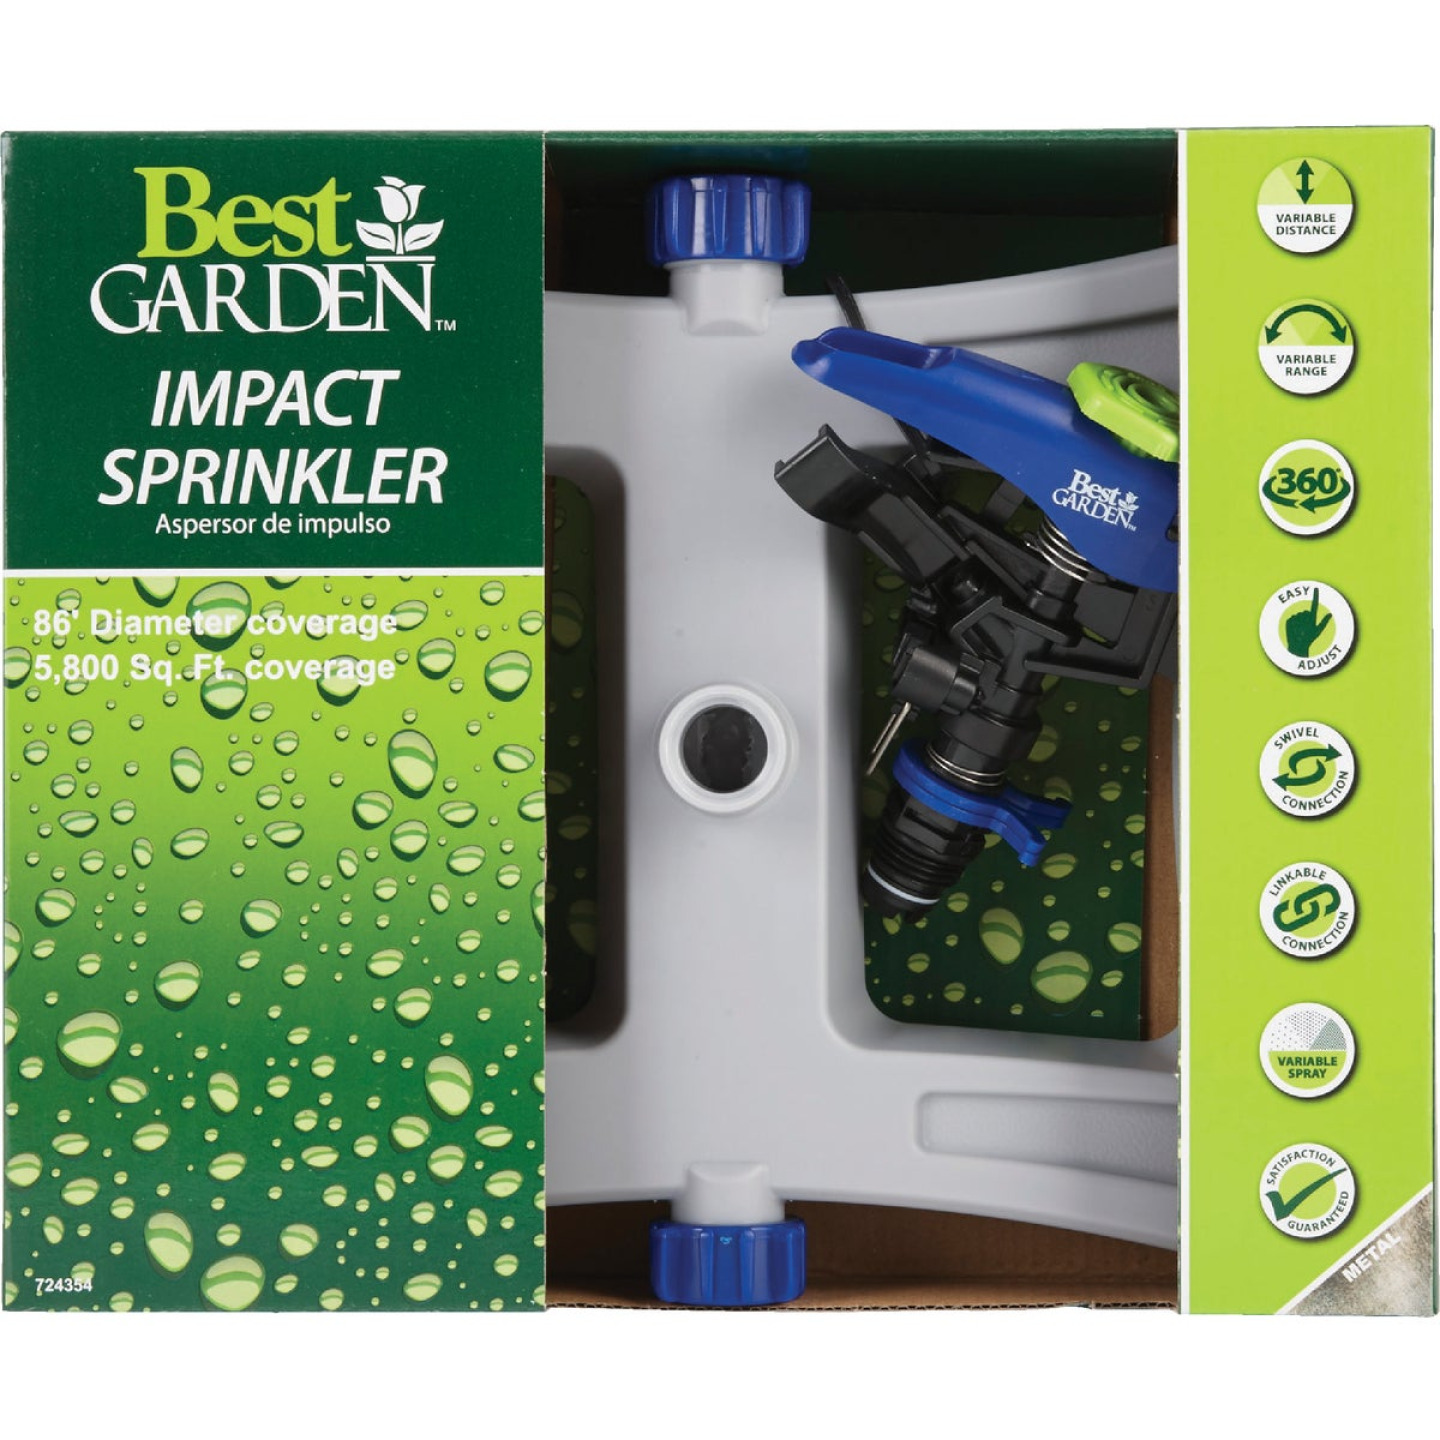 Best Garden Poly 5800 Sq. Ft. Sled Impulse Sprinkler Image 2